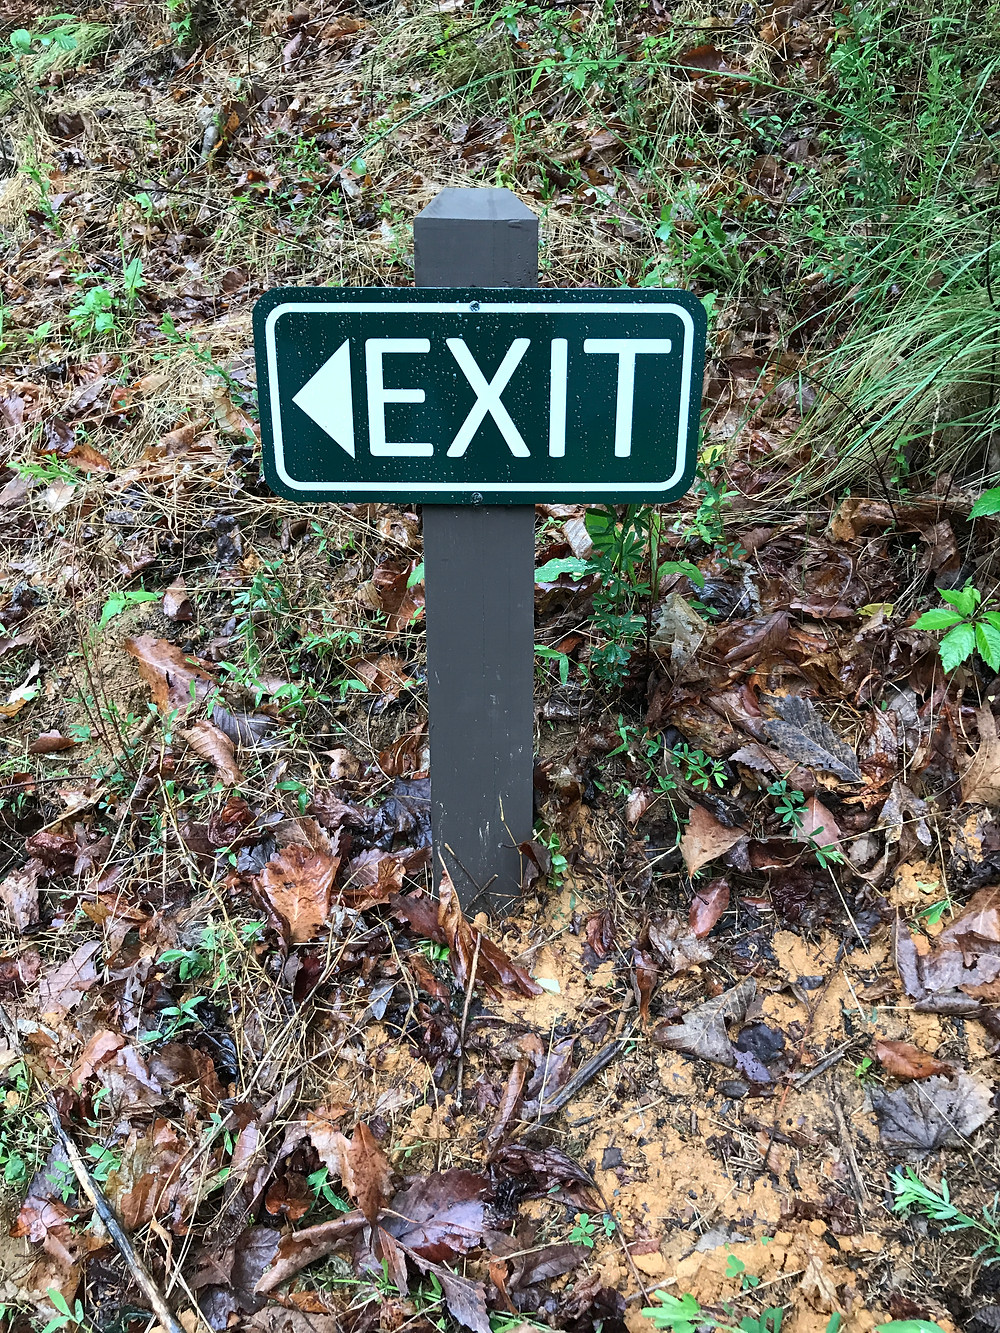 Members of CERT have recently installed new exit signs at most road junctions in Creston. These are designed to expedite safe passage by those using our roads that may not be intimately familiar with them, especially emergency responders like EMTs, ambulance drivers and firemen.